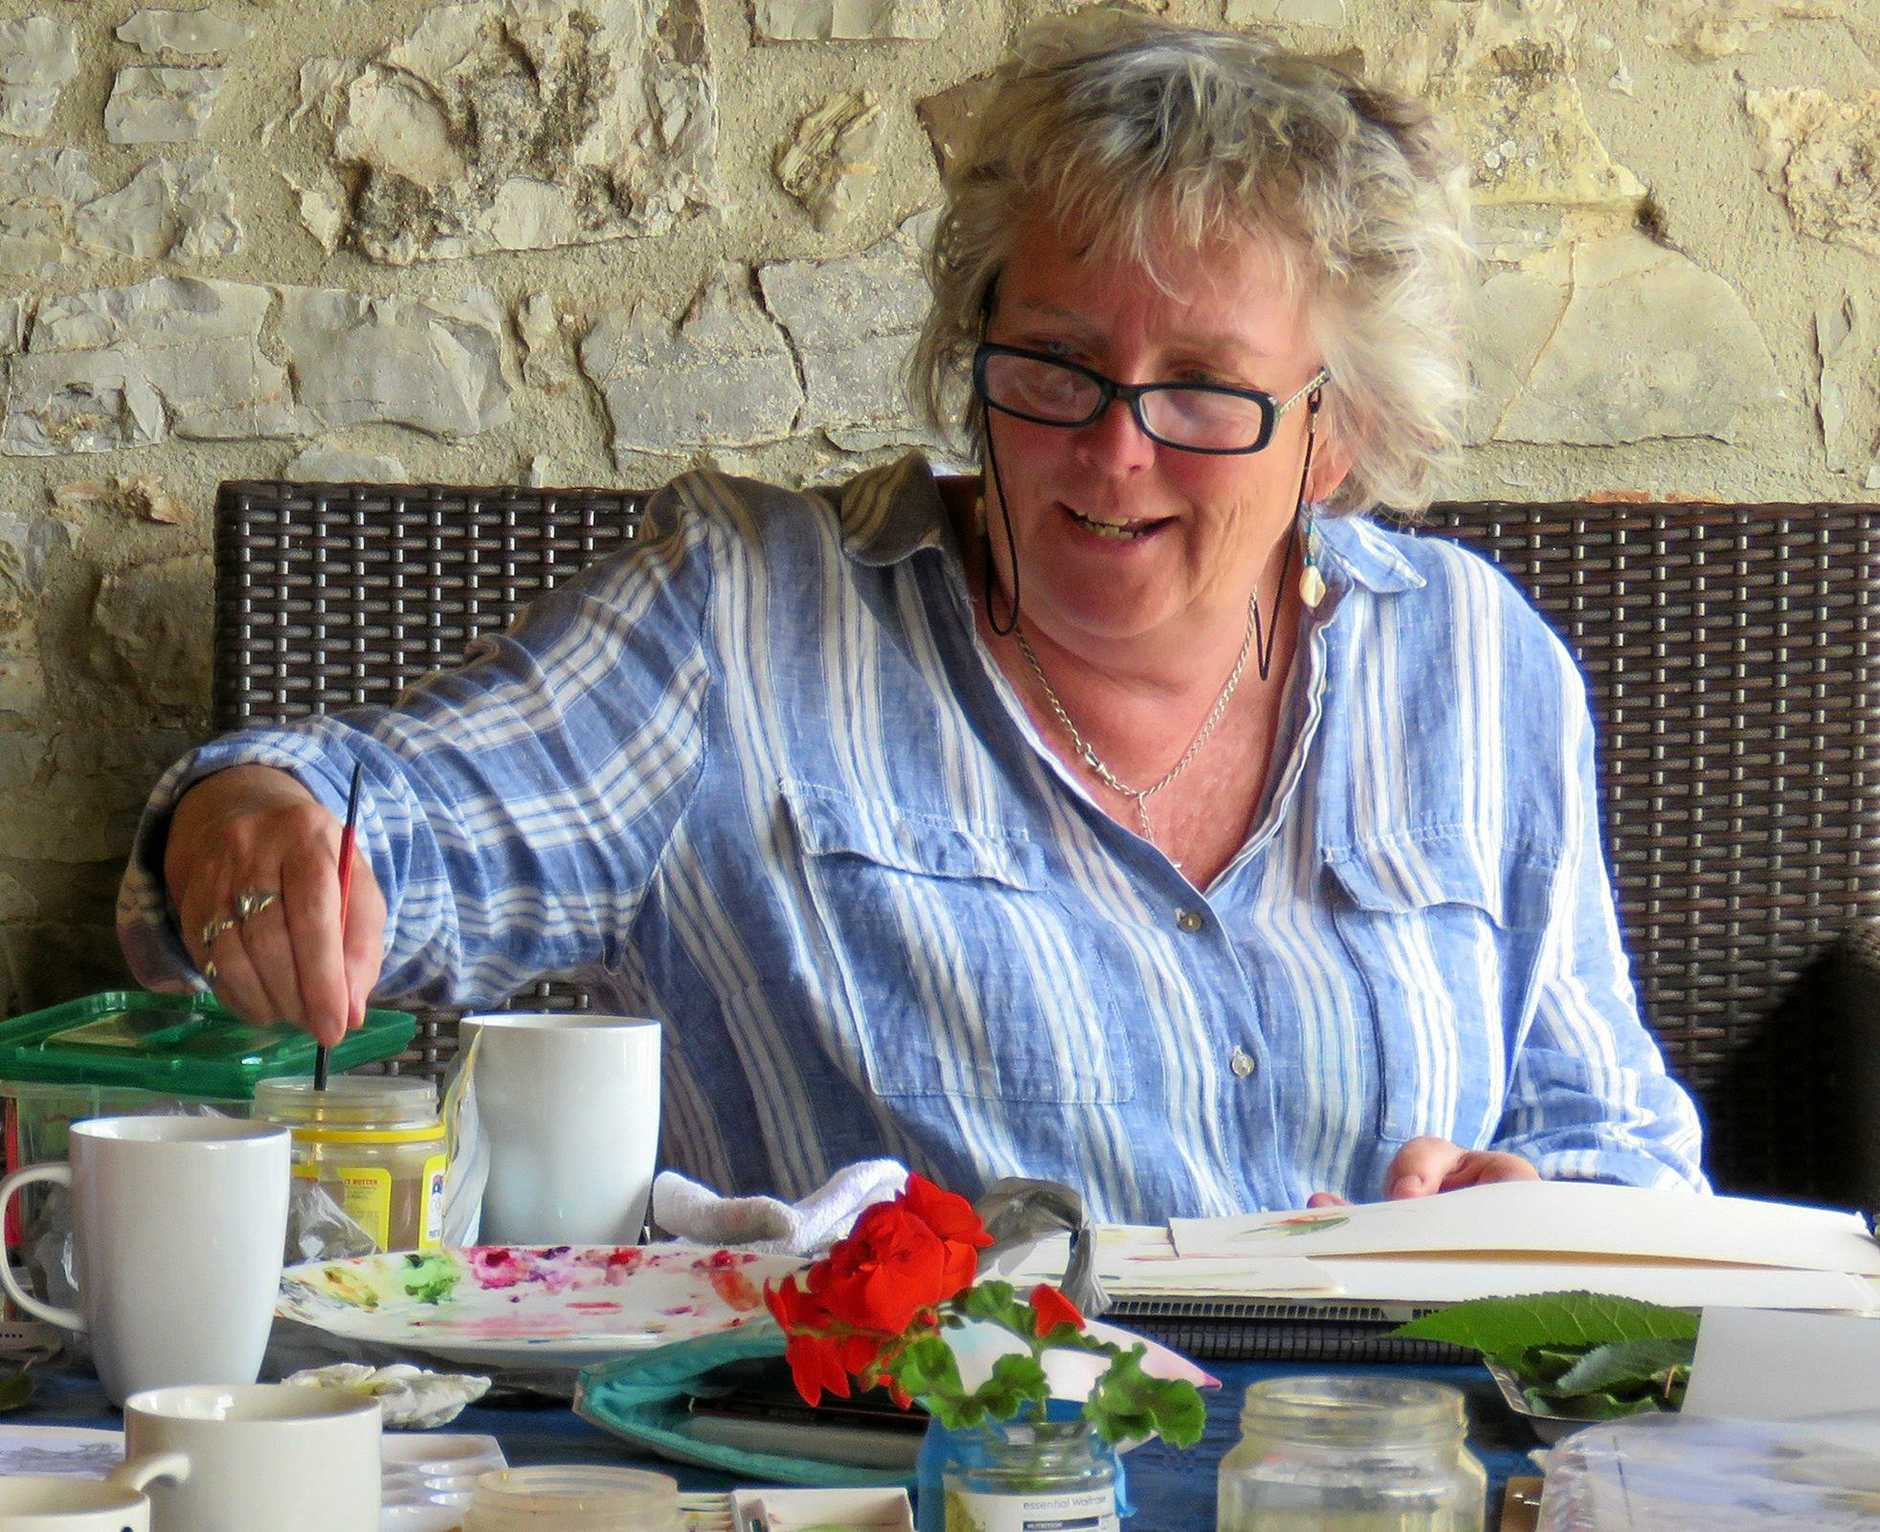 INSPIRED: Artist Belinda Biggs shares her dual loves of painting and travel through painting holidays.